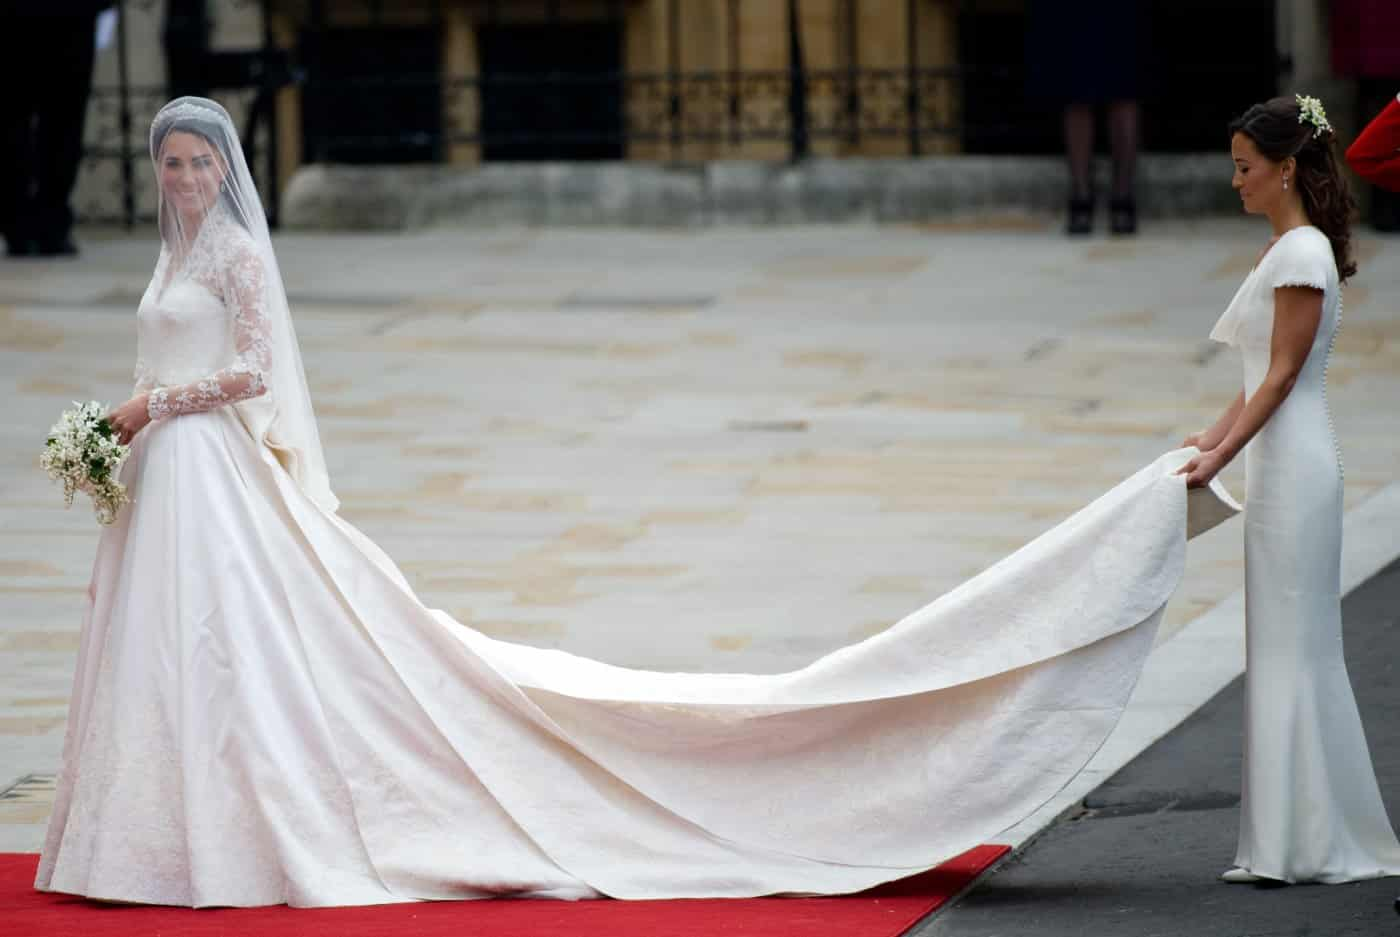 The magical wedding dress worn by Kate Middleton